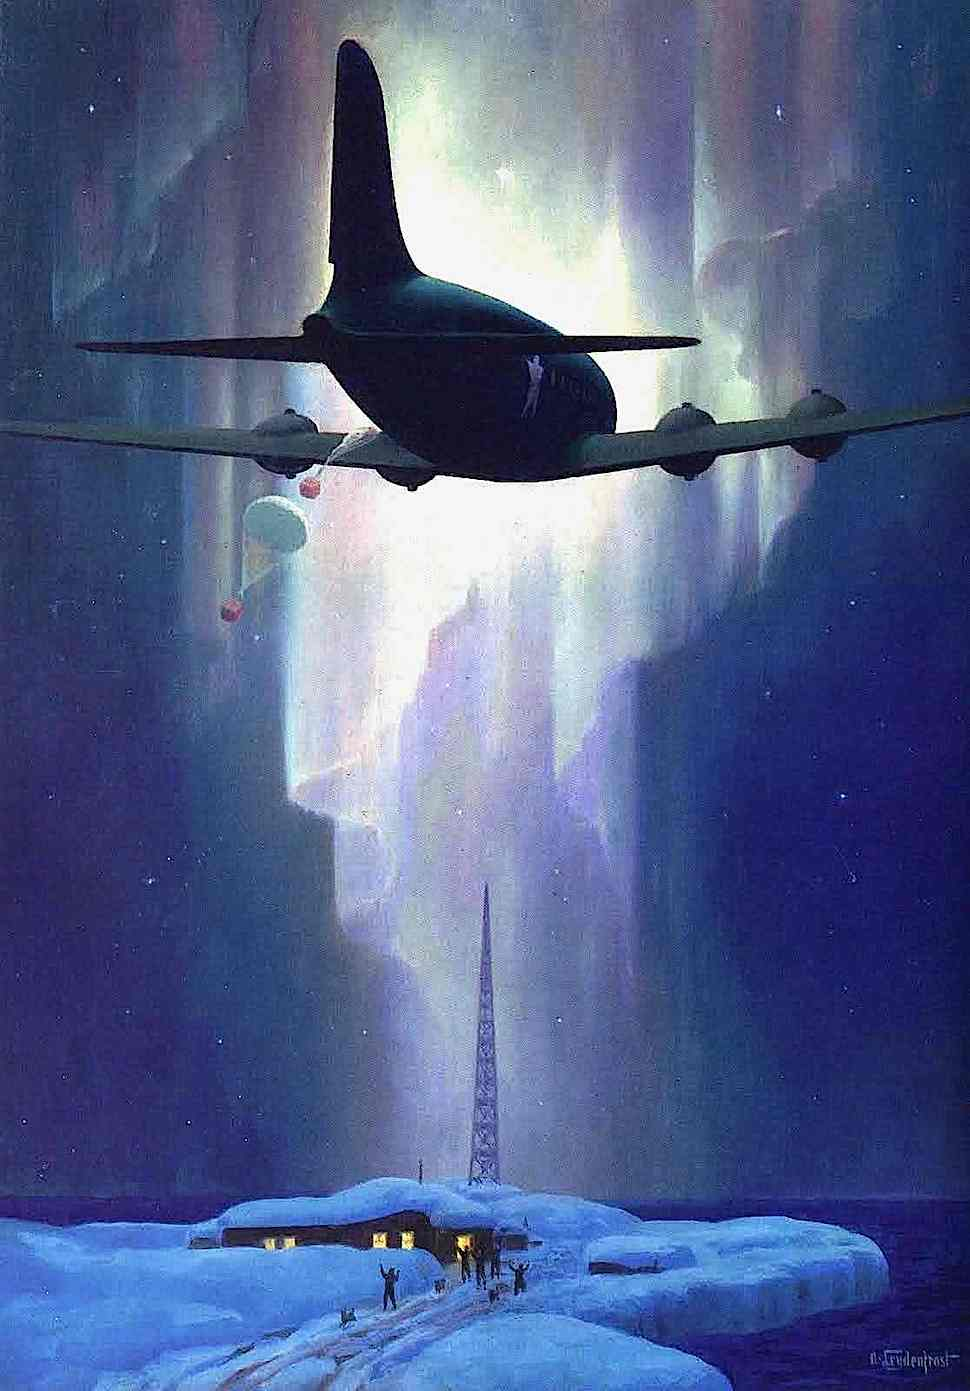 an Alexander Leydenfrost illustration of a military supply plane in the arctic with northern lights